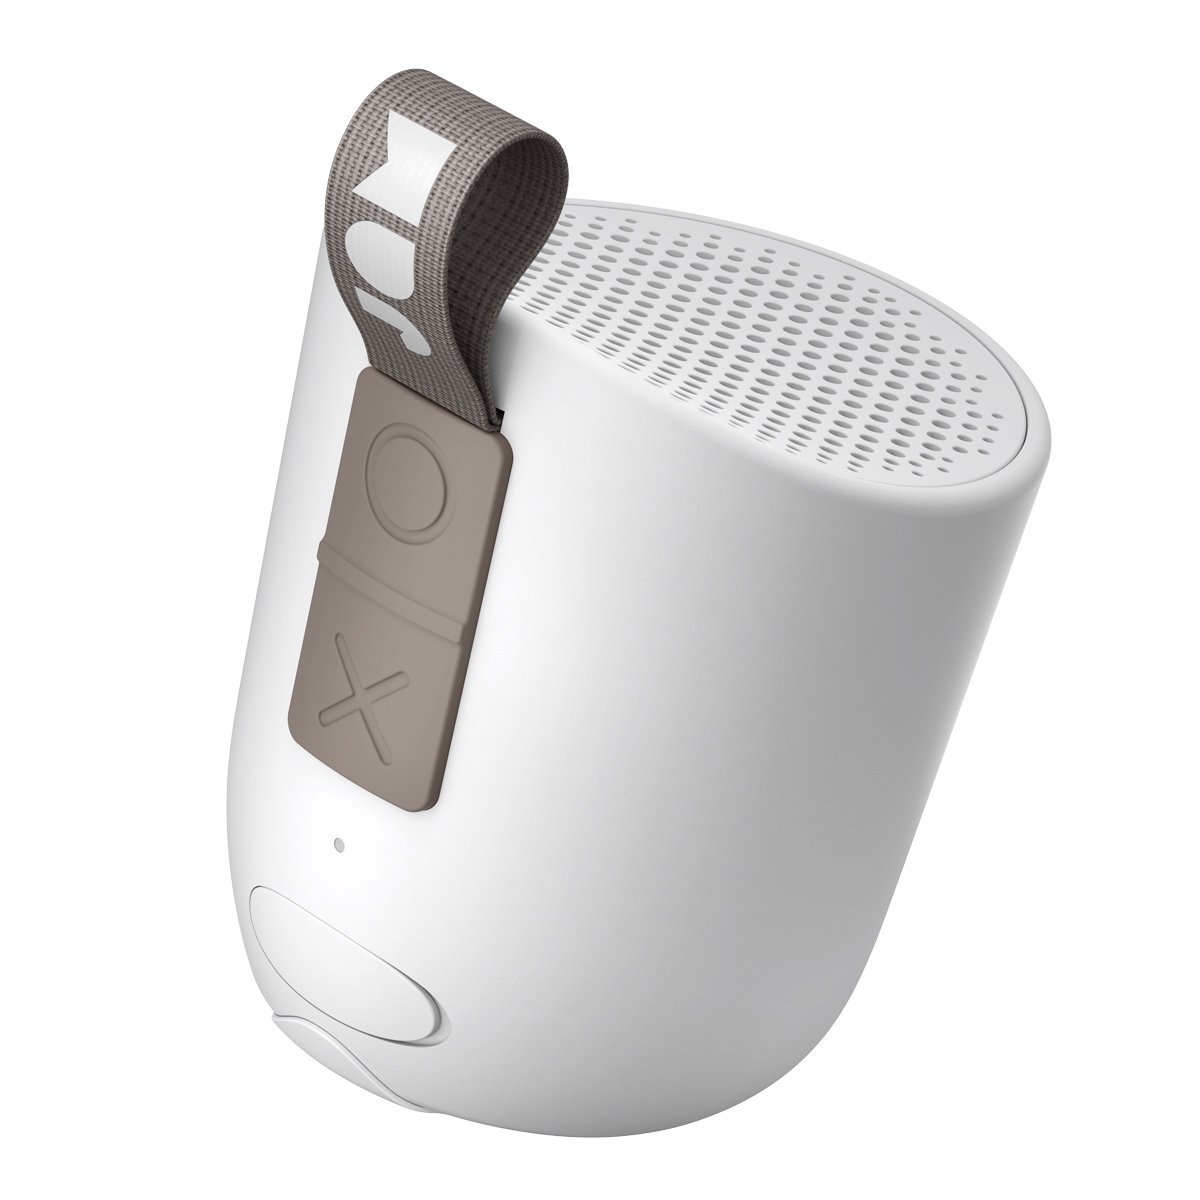 Jam Hxp202gy Chill Out Bluetooth Speaker Grey Homedics CE HX-P202GY Accessory Electronics Home Audio & Theater